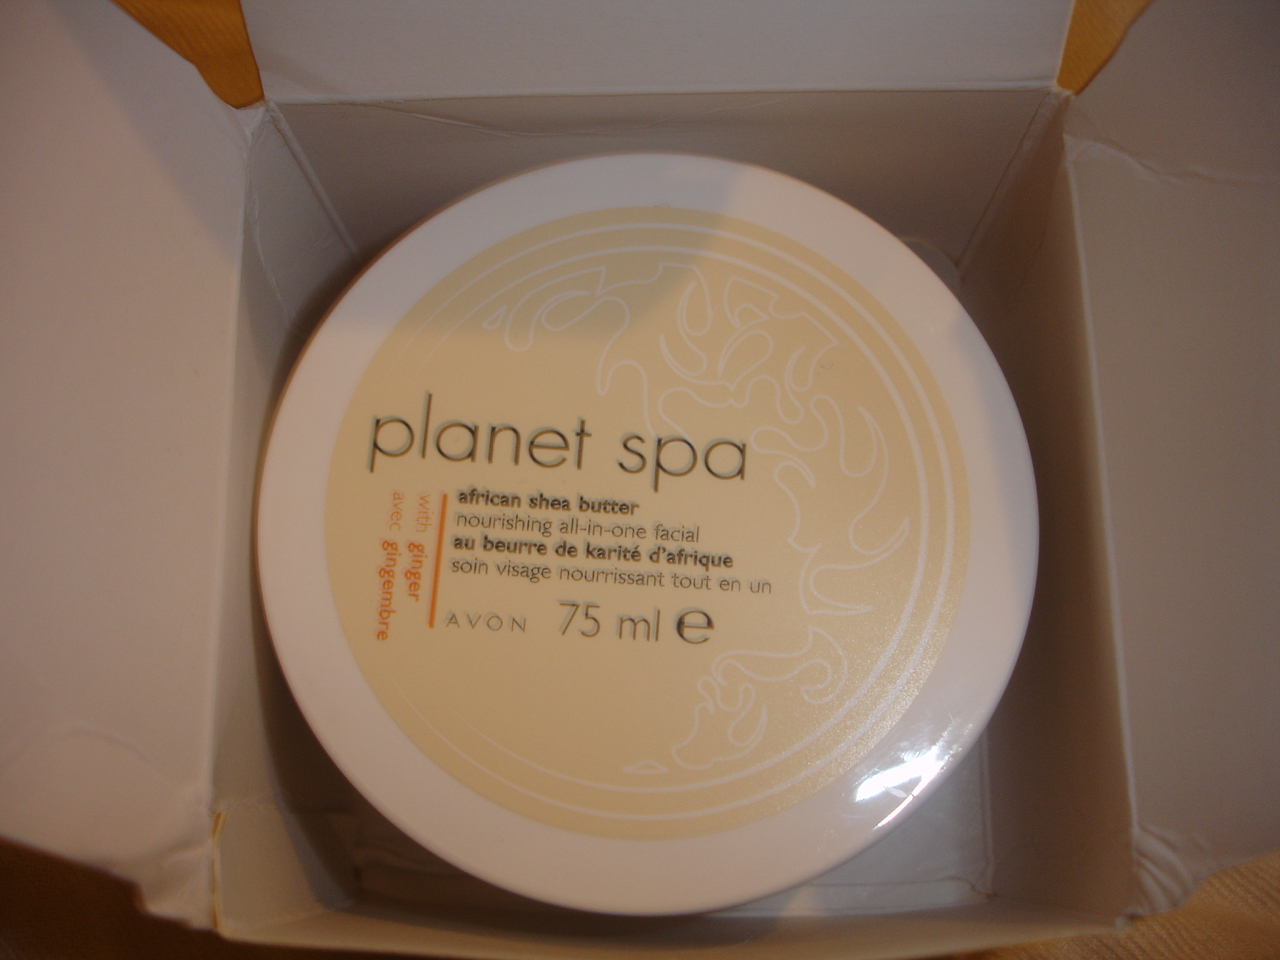 Pinch your cheeks some nice avon planet spa things for Plante salon